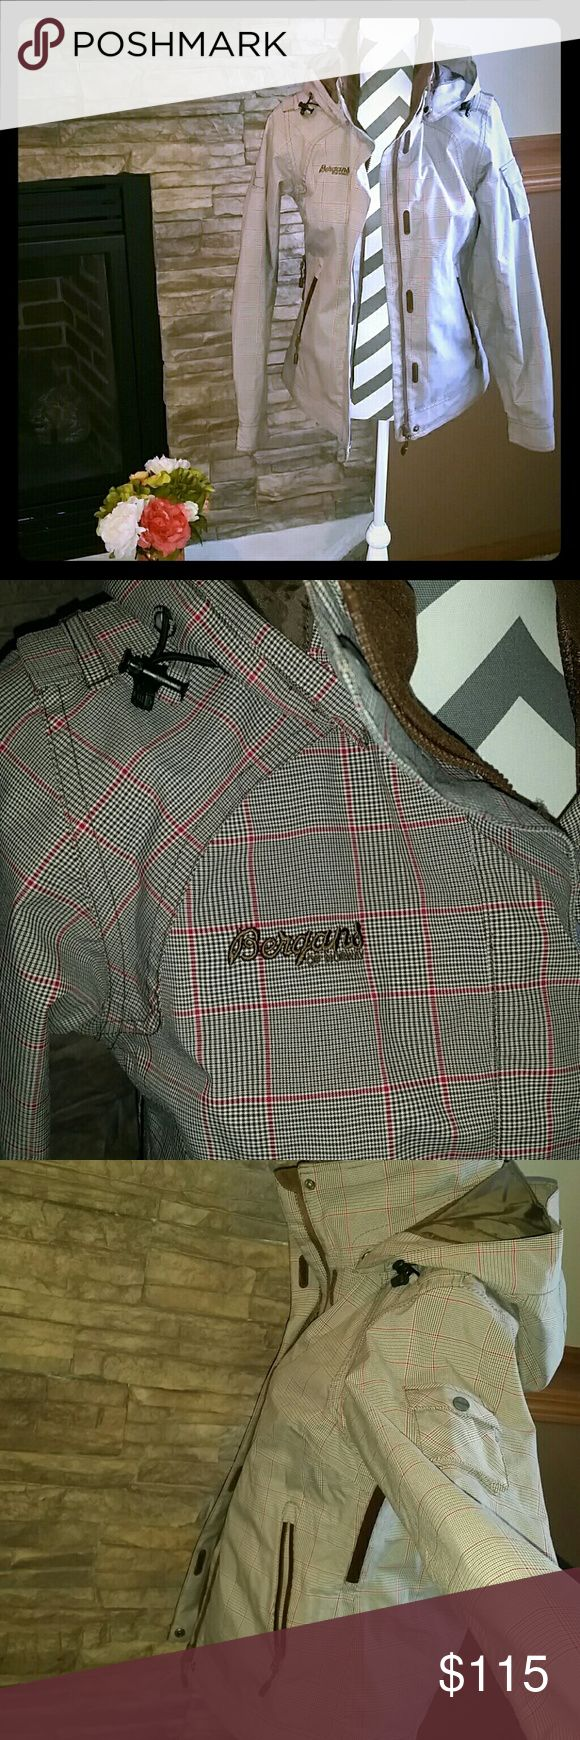 **BERGANS of Norway Coat** Great condition, hardly worn, brown/burnt orange color plaid. Tons of storage places, removable hood, adjustable waist and air vents under arms. Bergans of Norway Jackets & Coats